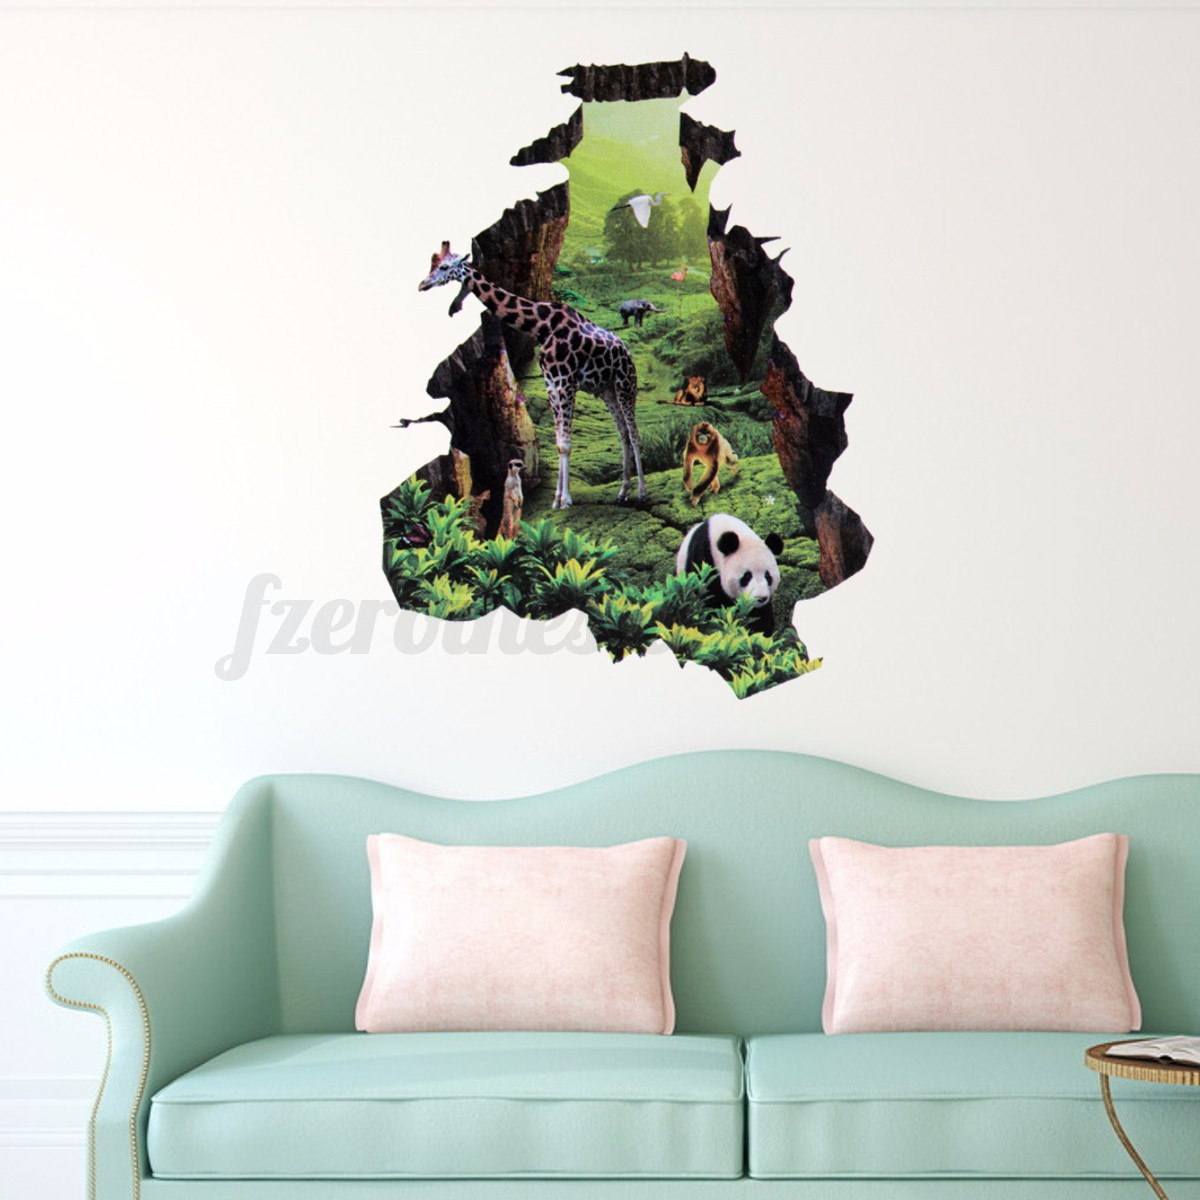 3d fenster landschaft wandtattoo wandsticker wandaufkleber kinderzimmer wandbild ebay. Black Bedroom Furniture Sets. Home Design Ideas